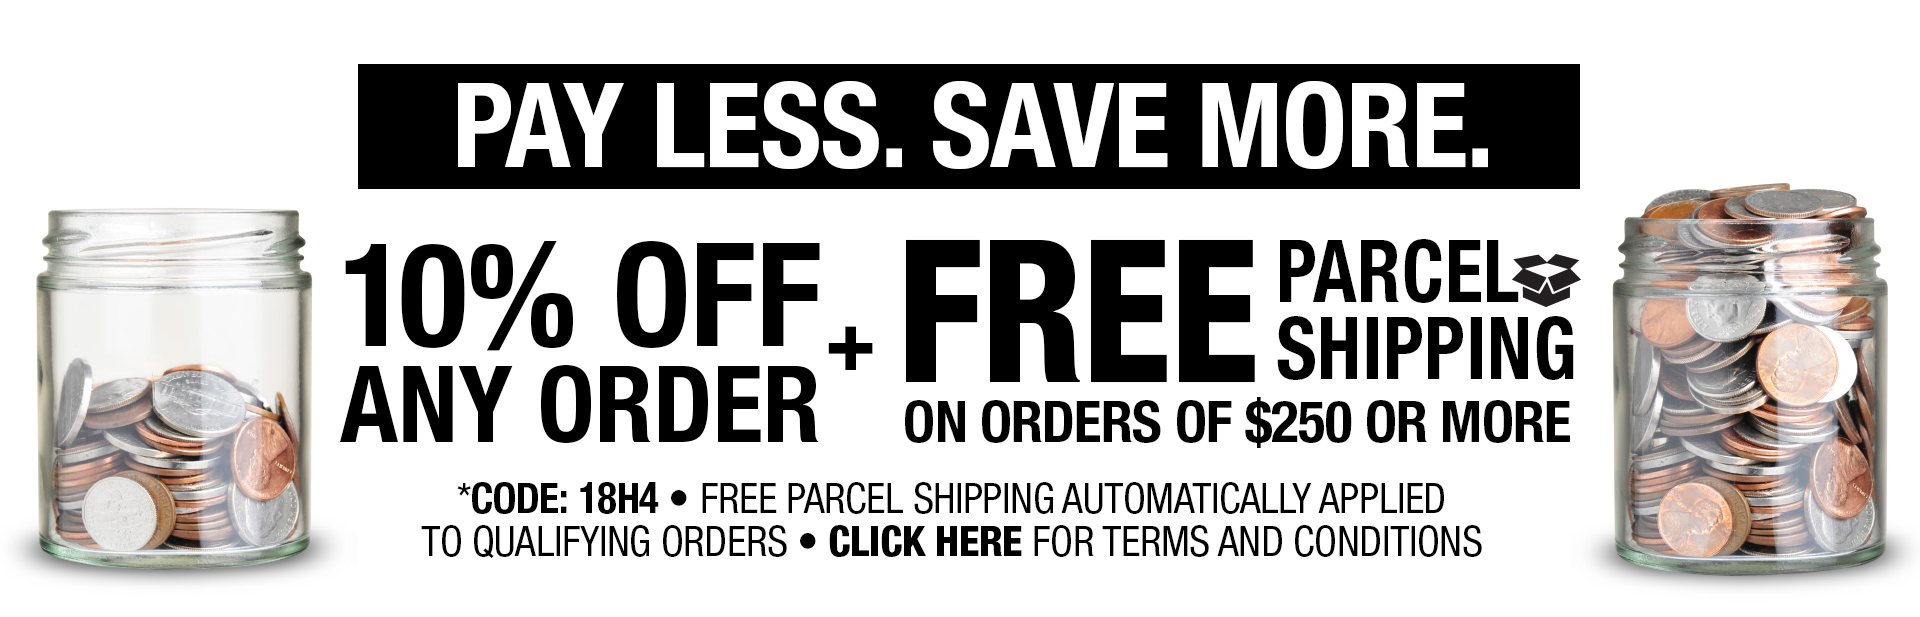 Pay Less. Save More.  10% off any order + Free Parcel Shipping on orders of $250 pr more.  Use Promo Code 18H4